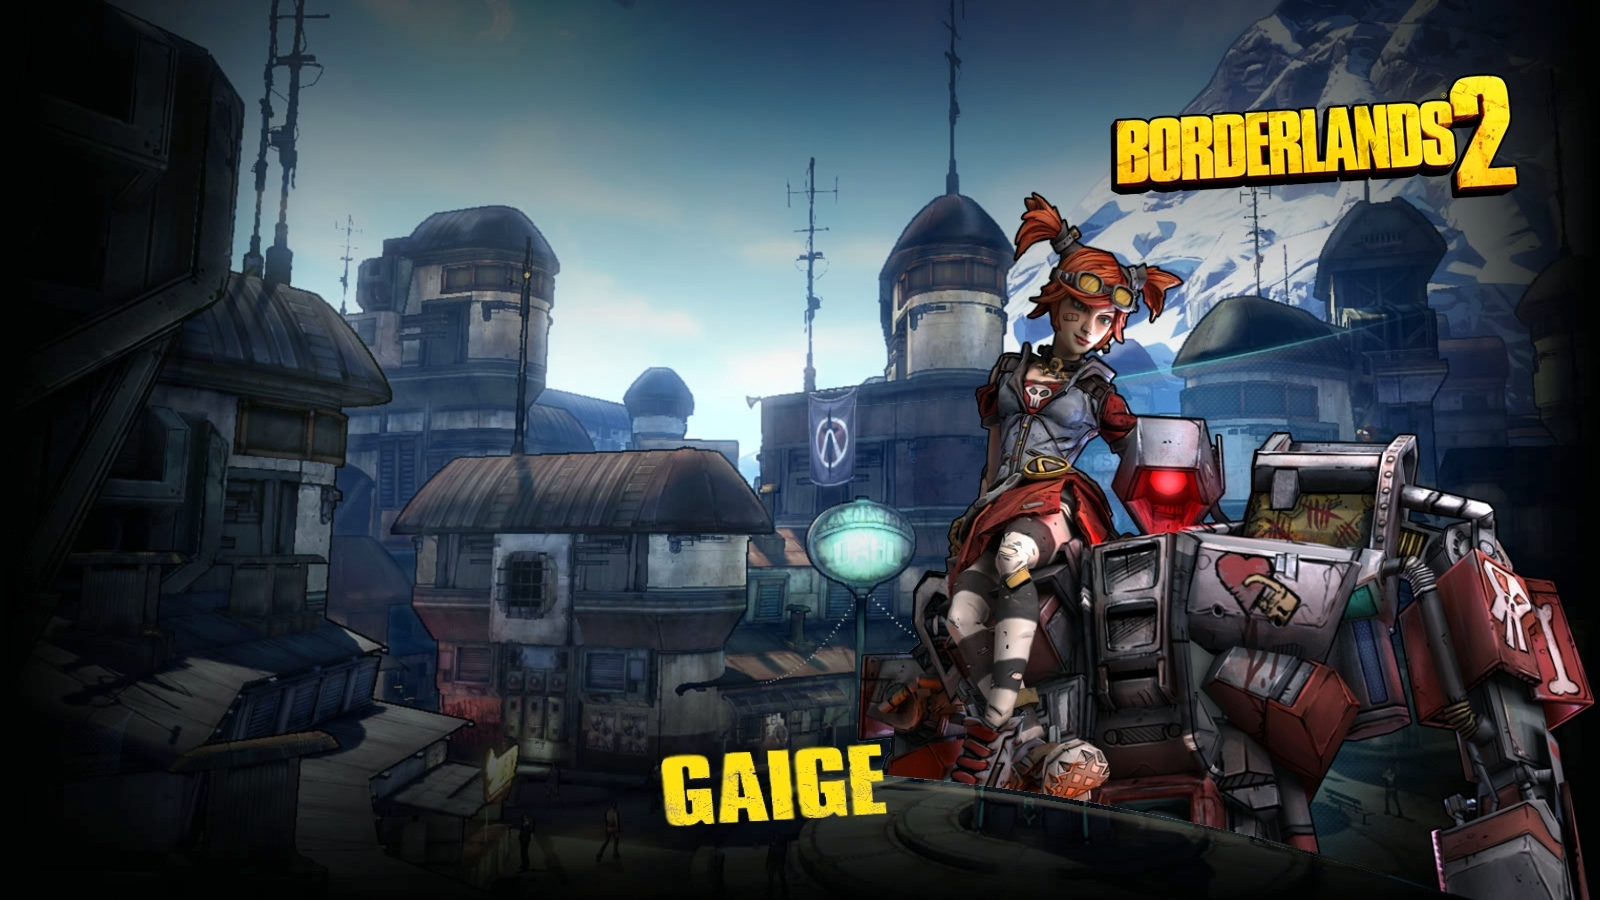 Borderlands 2 gaige wallpaper